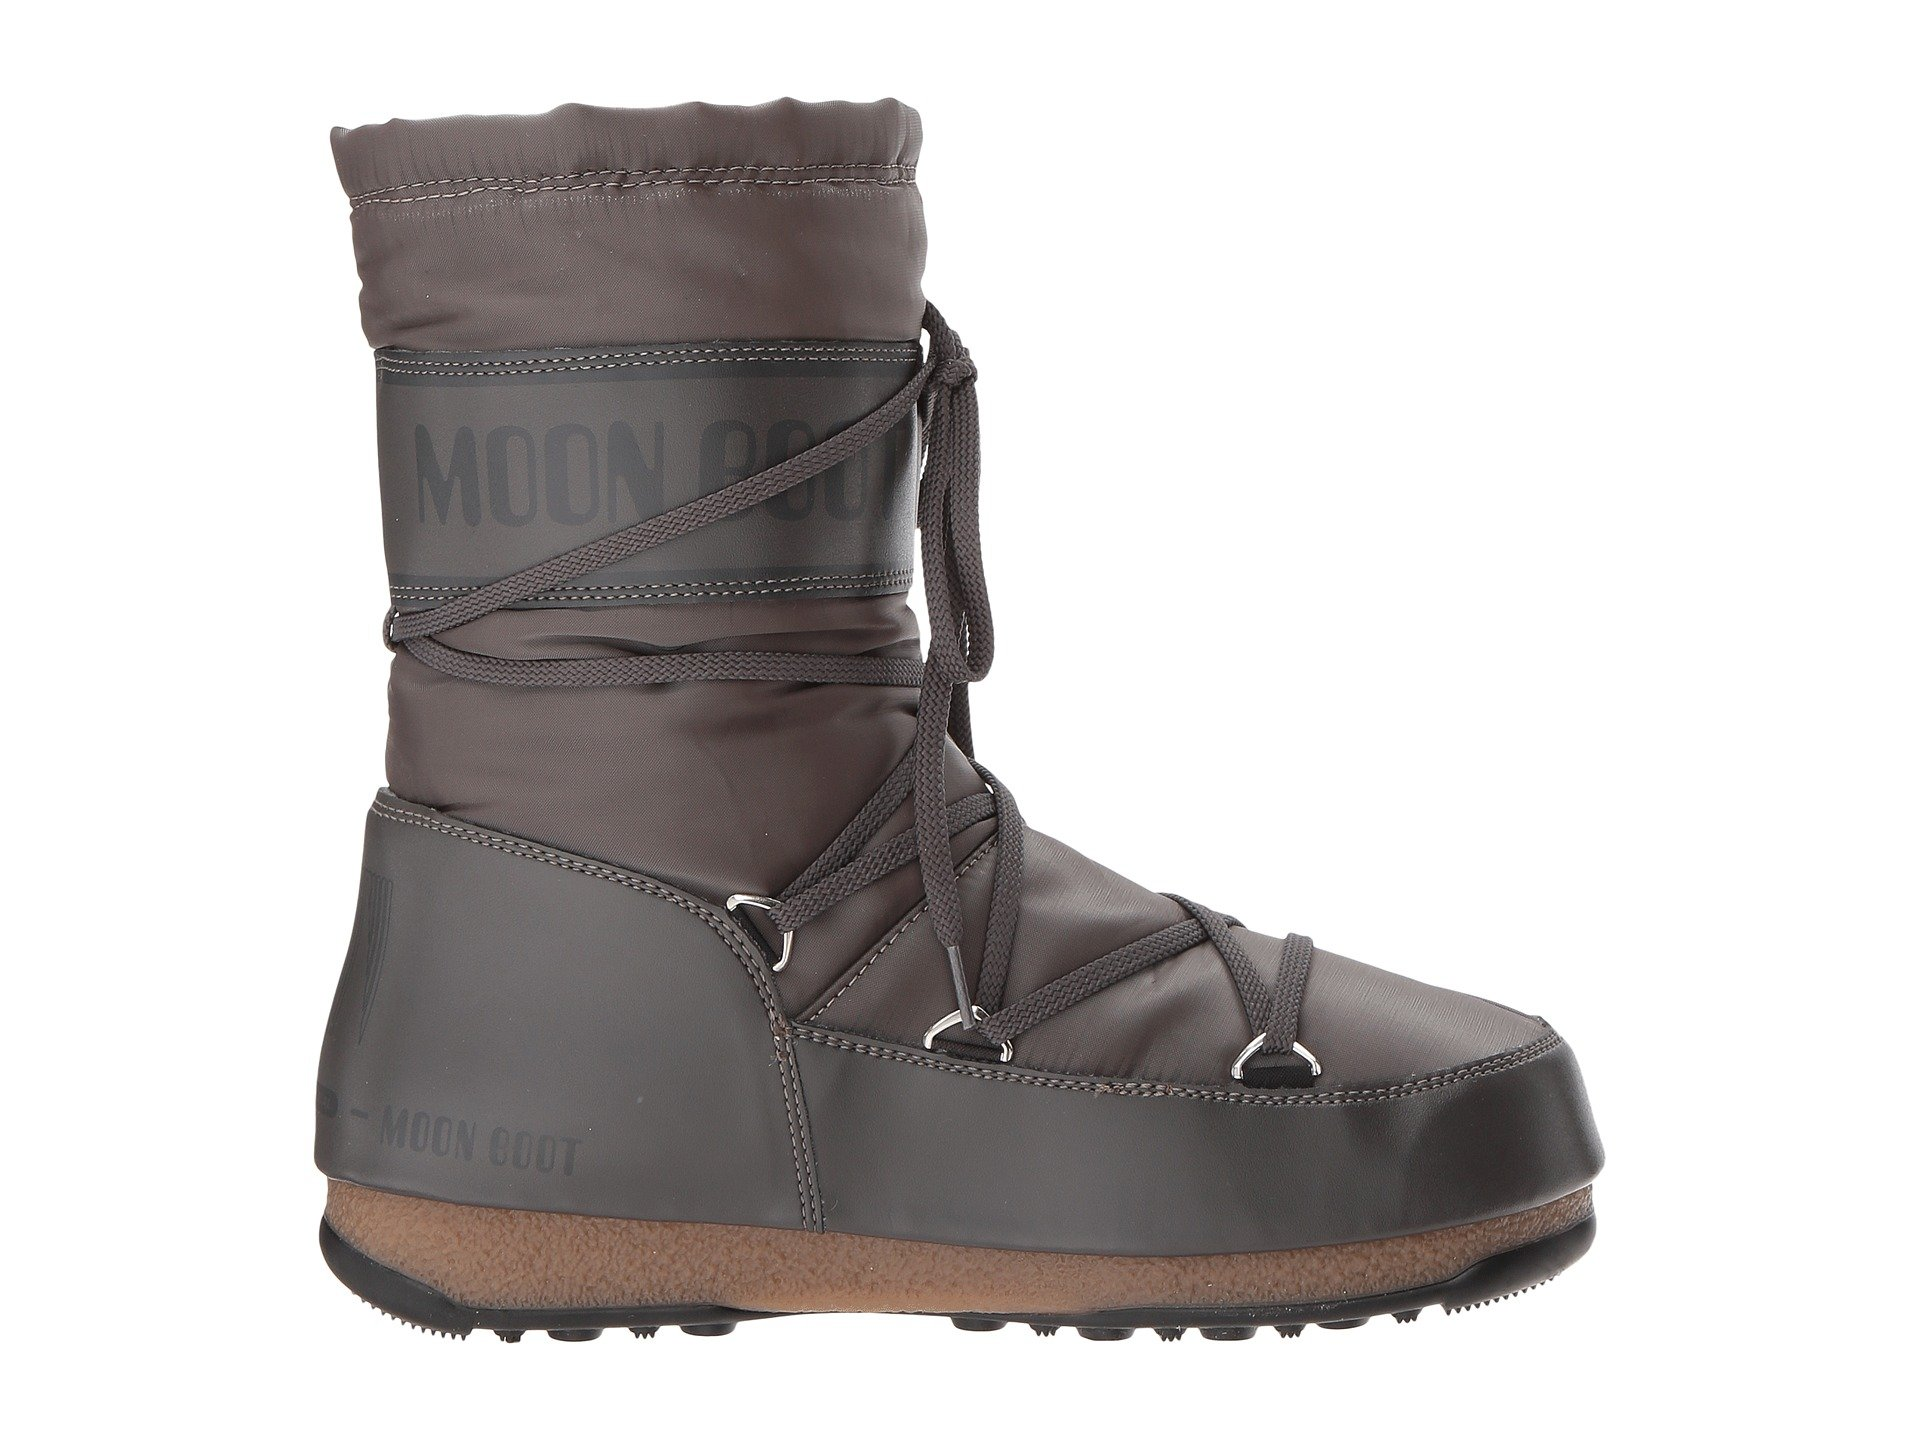 tecnica moon boot we soft shade mid at. Black Bedroom Furniture Sets. Home Design Ideas